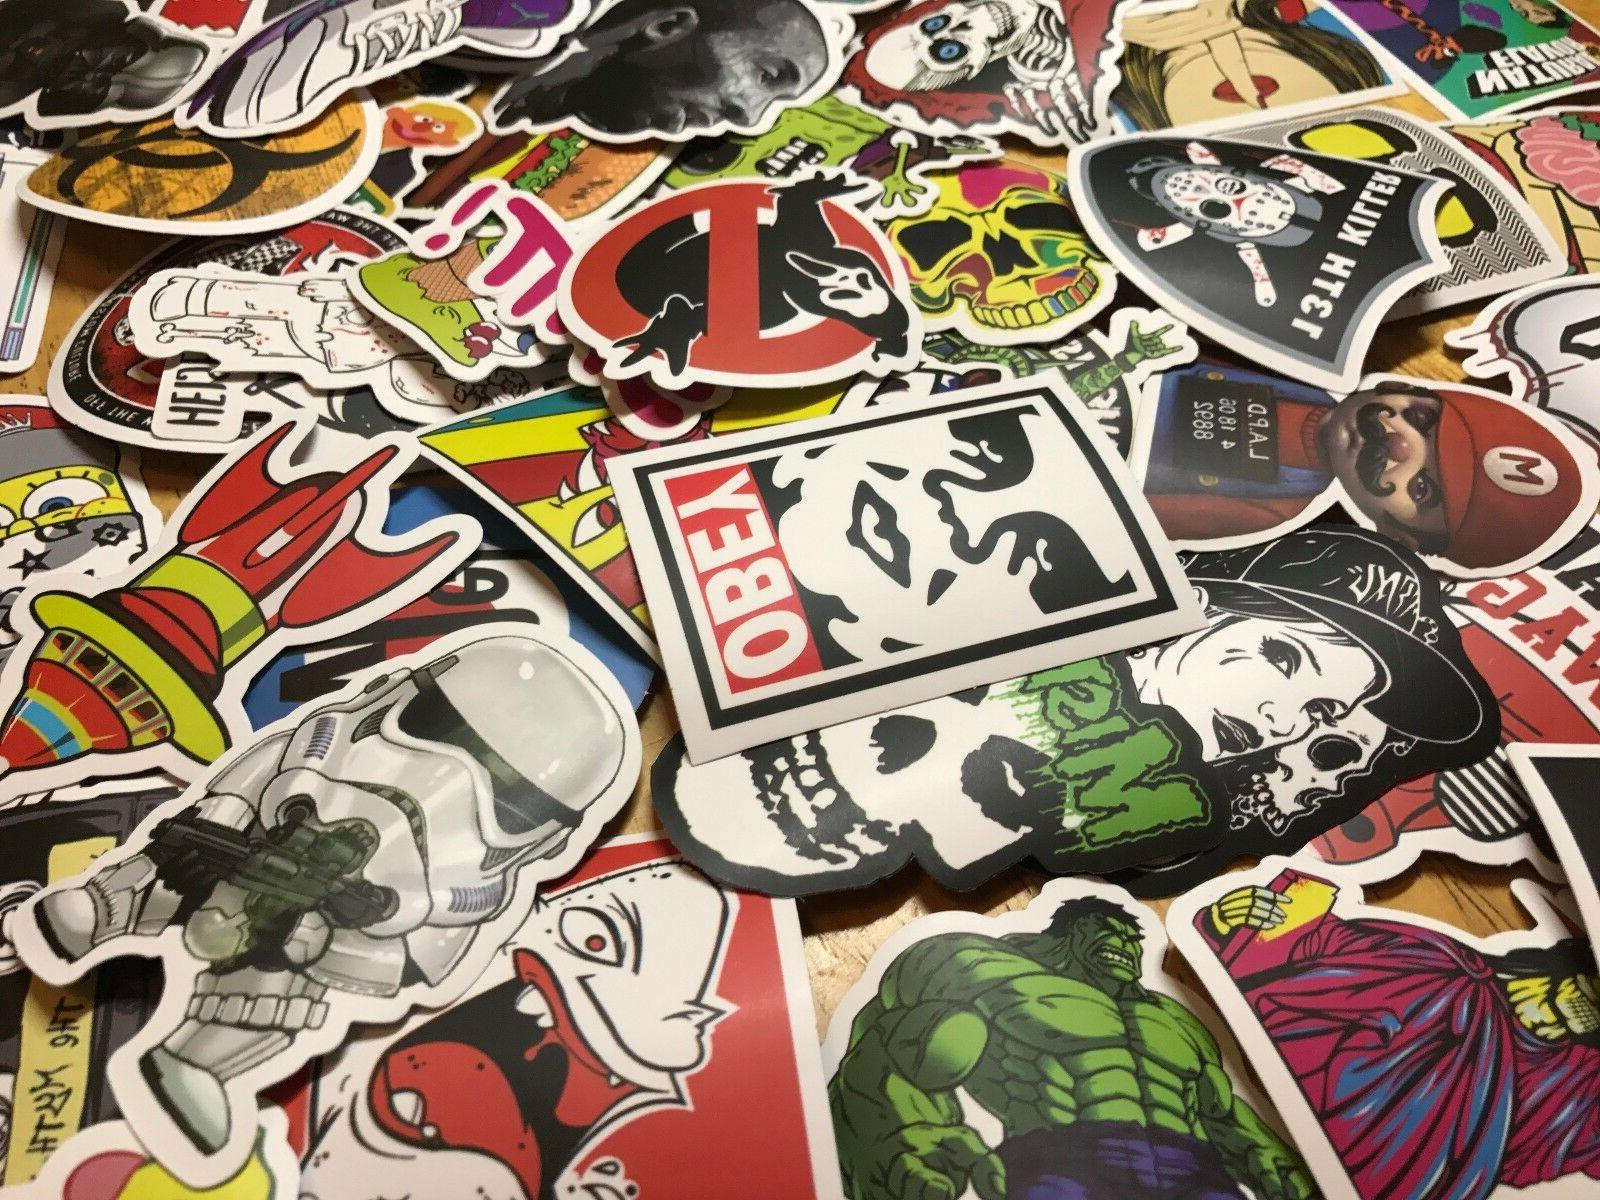 100 Skateboard Stickers bomb Vinyl Laptop Luggage Decals Dop